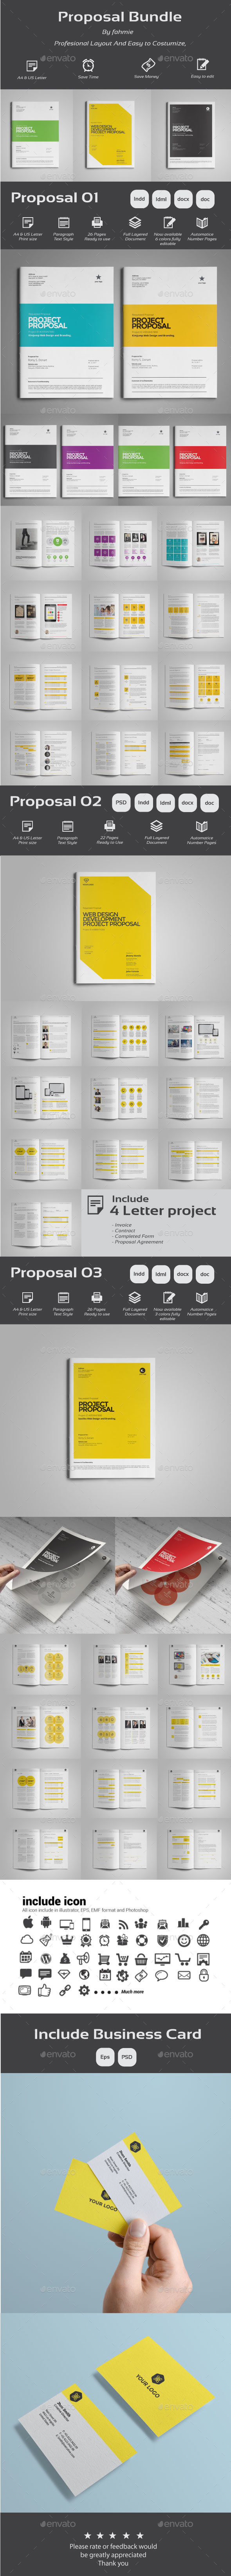 Proposal Bundle - Proposals & Invoices Stationery